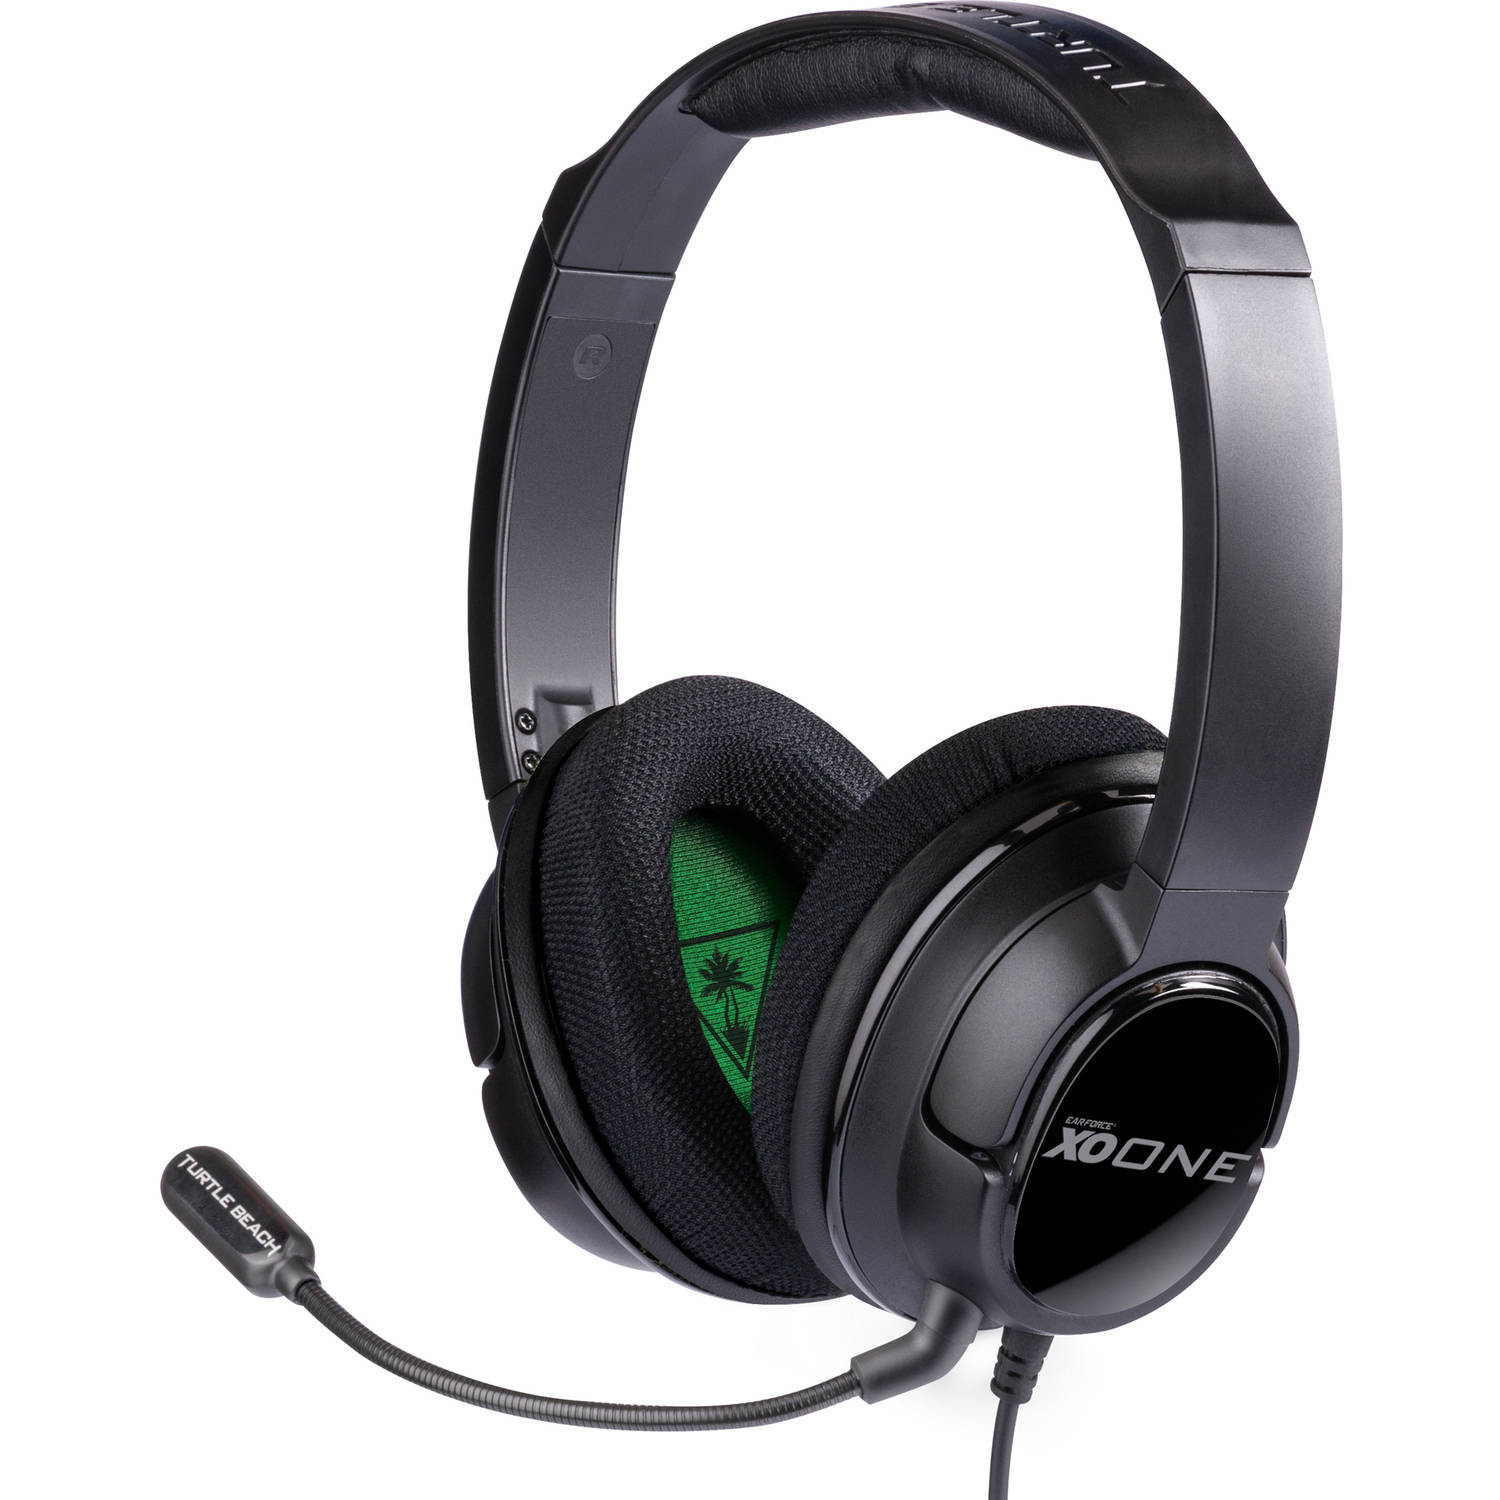 Turtle Beach Ear Force XO One Stereo Gaming Headset, Refurbished (Xbox One)